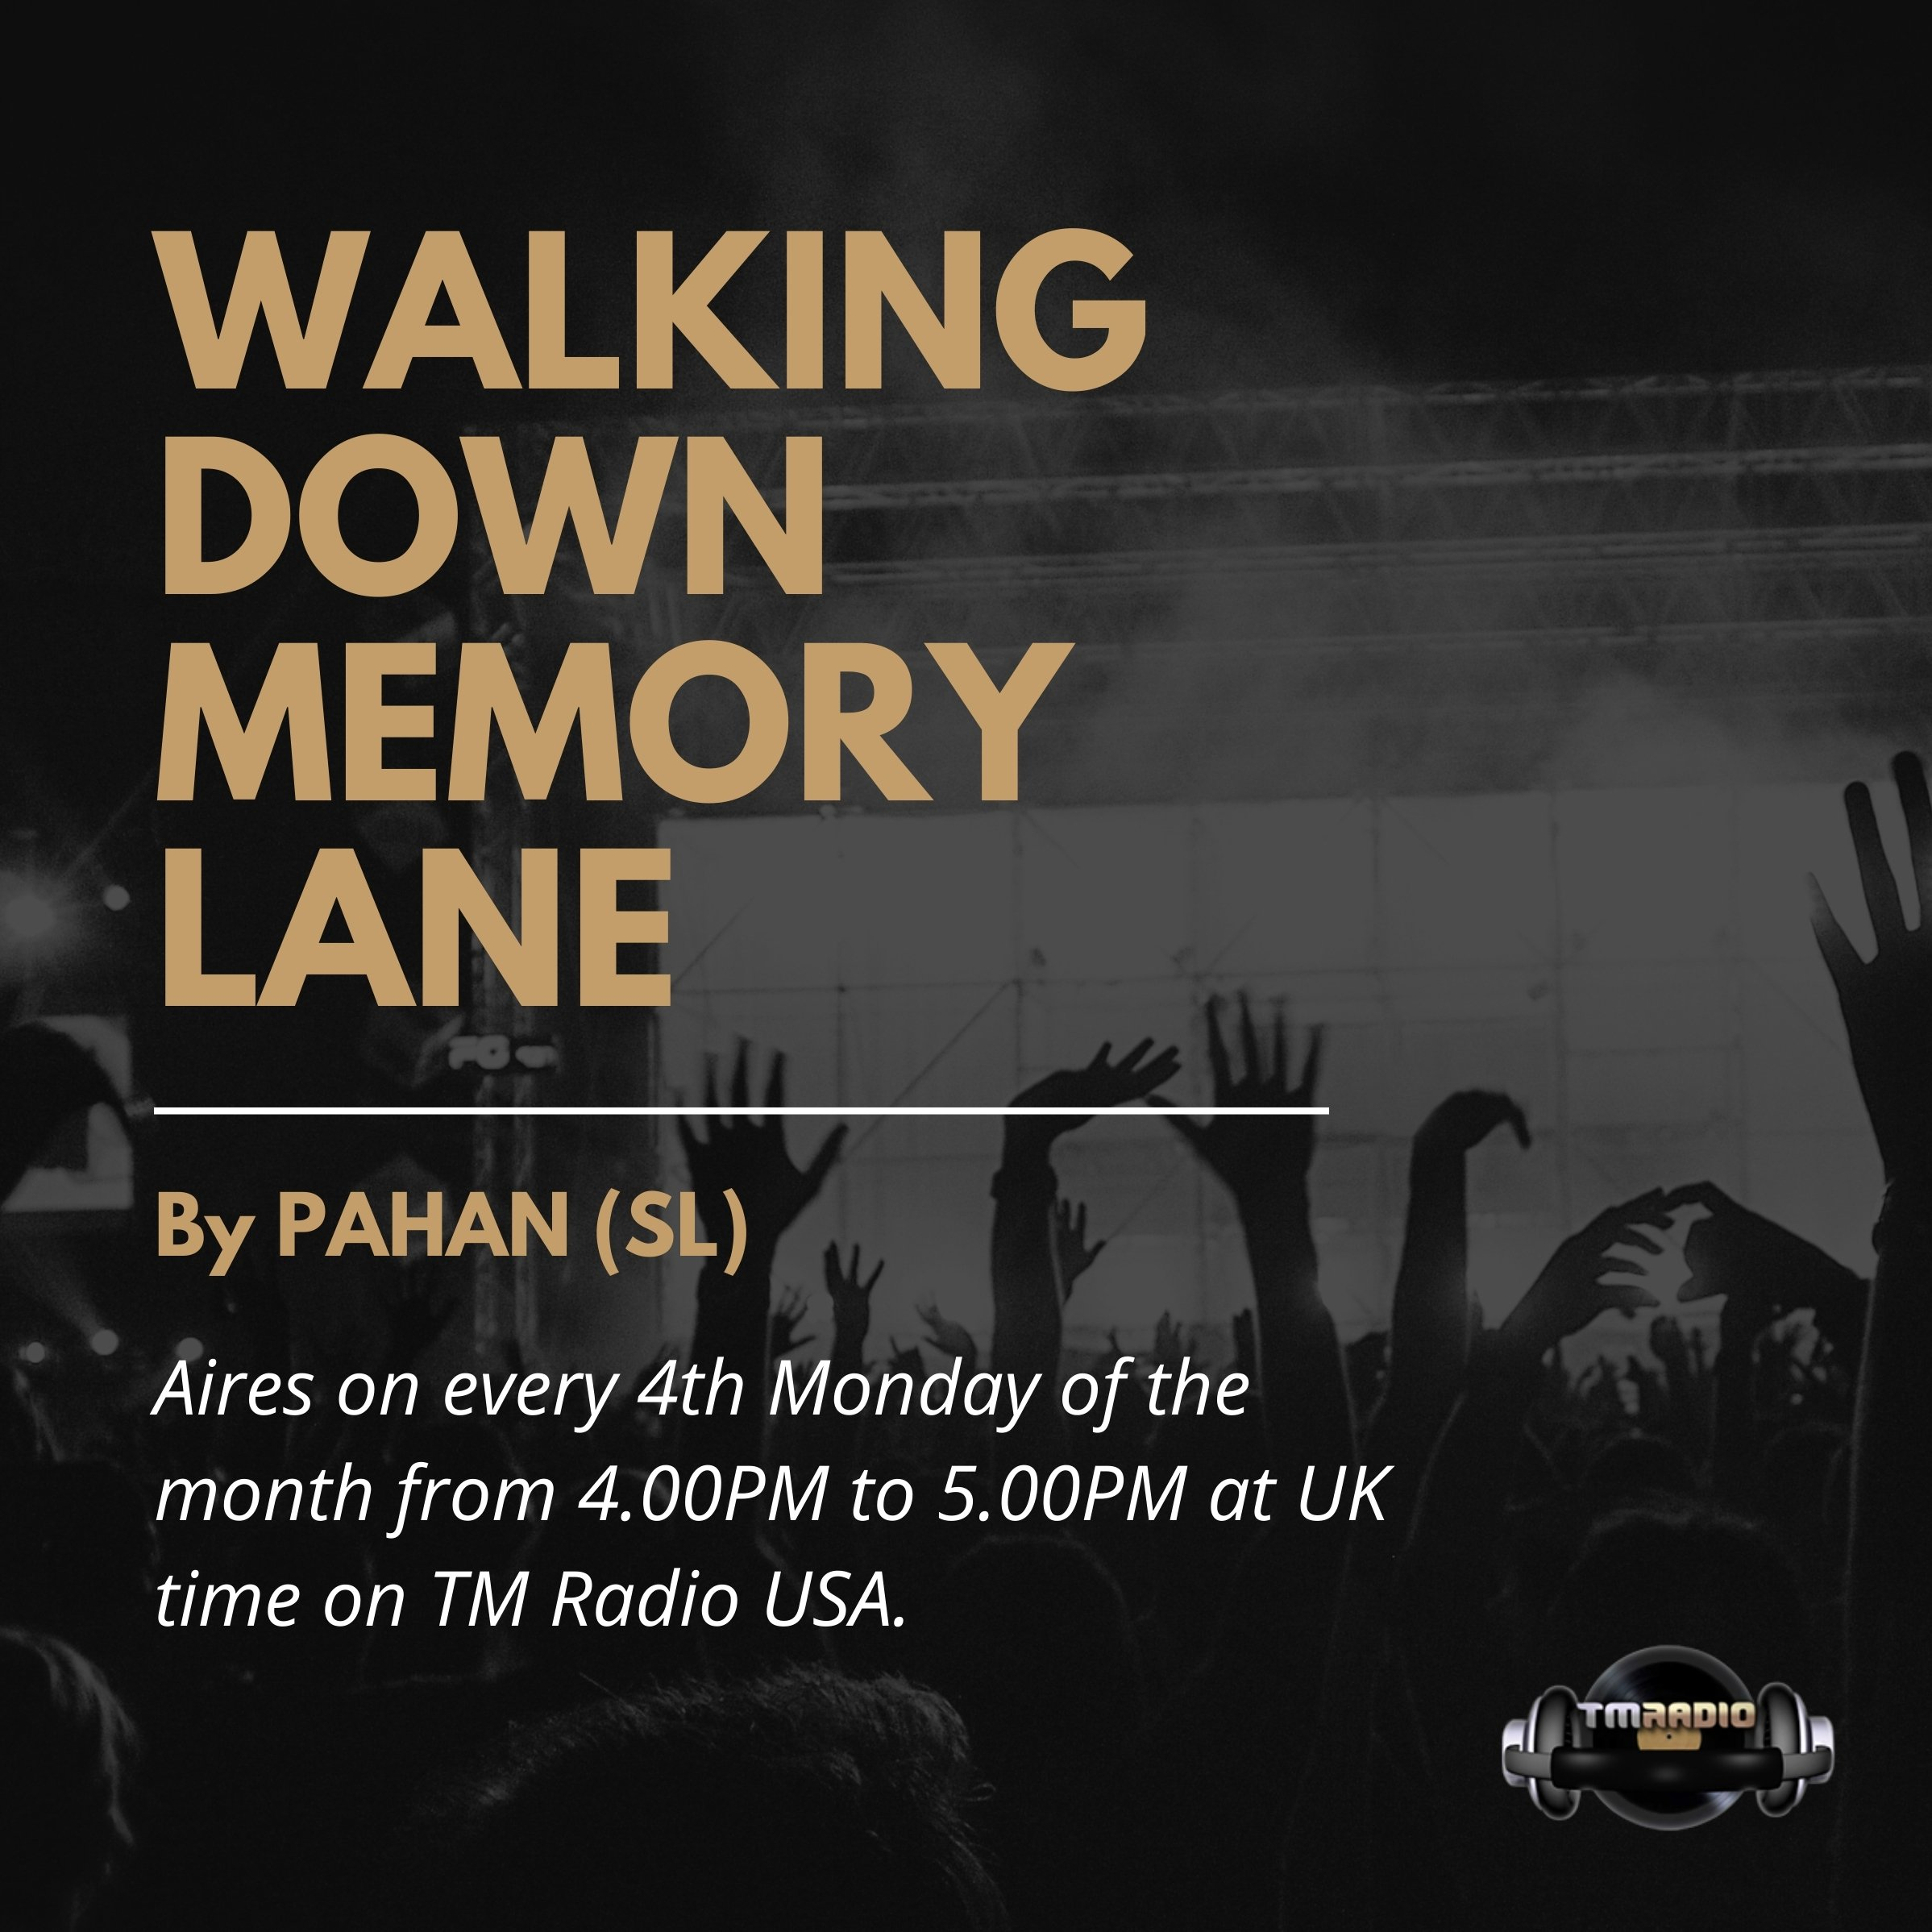 Walking Down Memory Lane :: Walking Down Memory Lane |013| Guest Mix by Emi Galvan (aired on March 23rd, 2020) banner logo